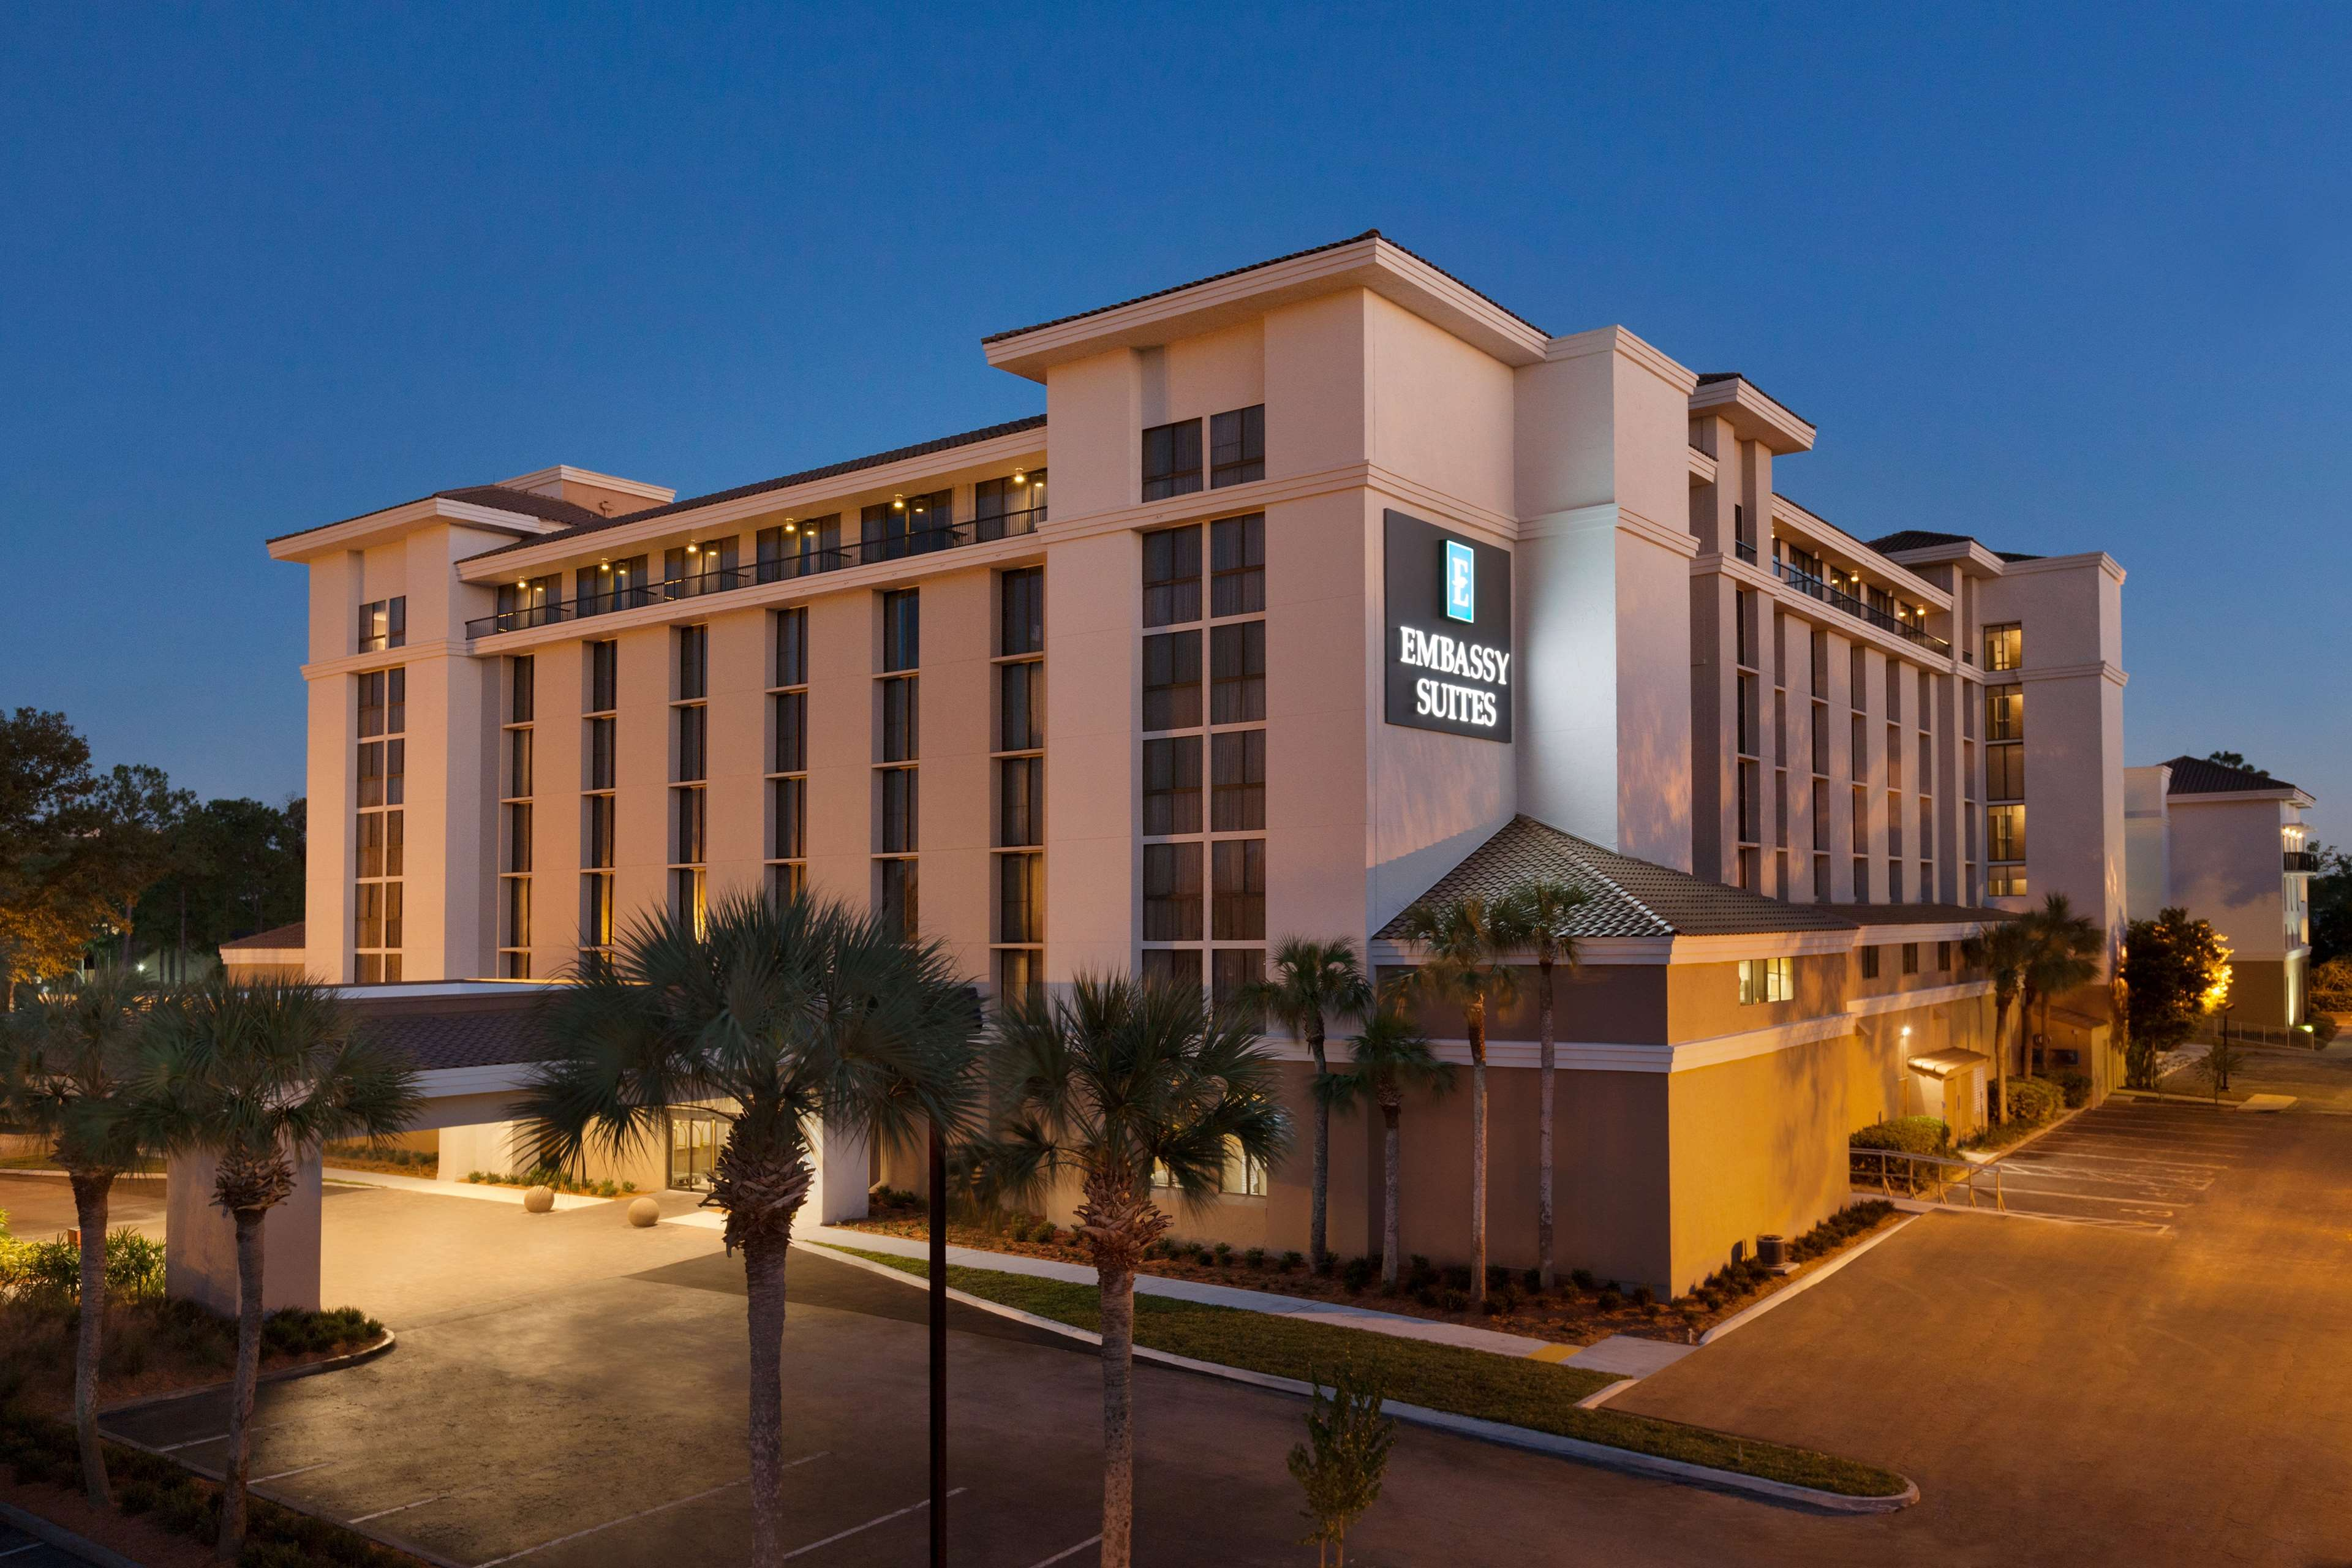 Embassy Suites by Hilton Jacksonville Baymeadows image 0